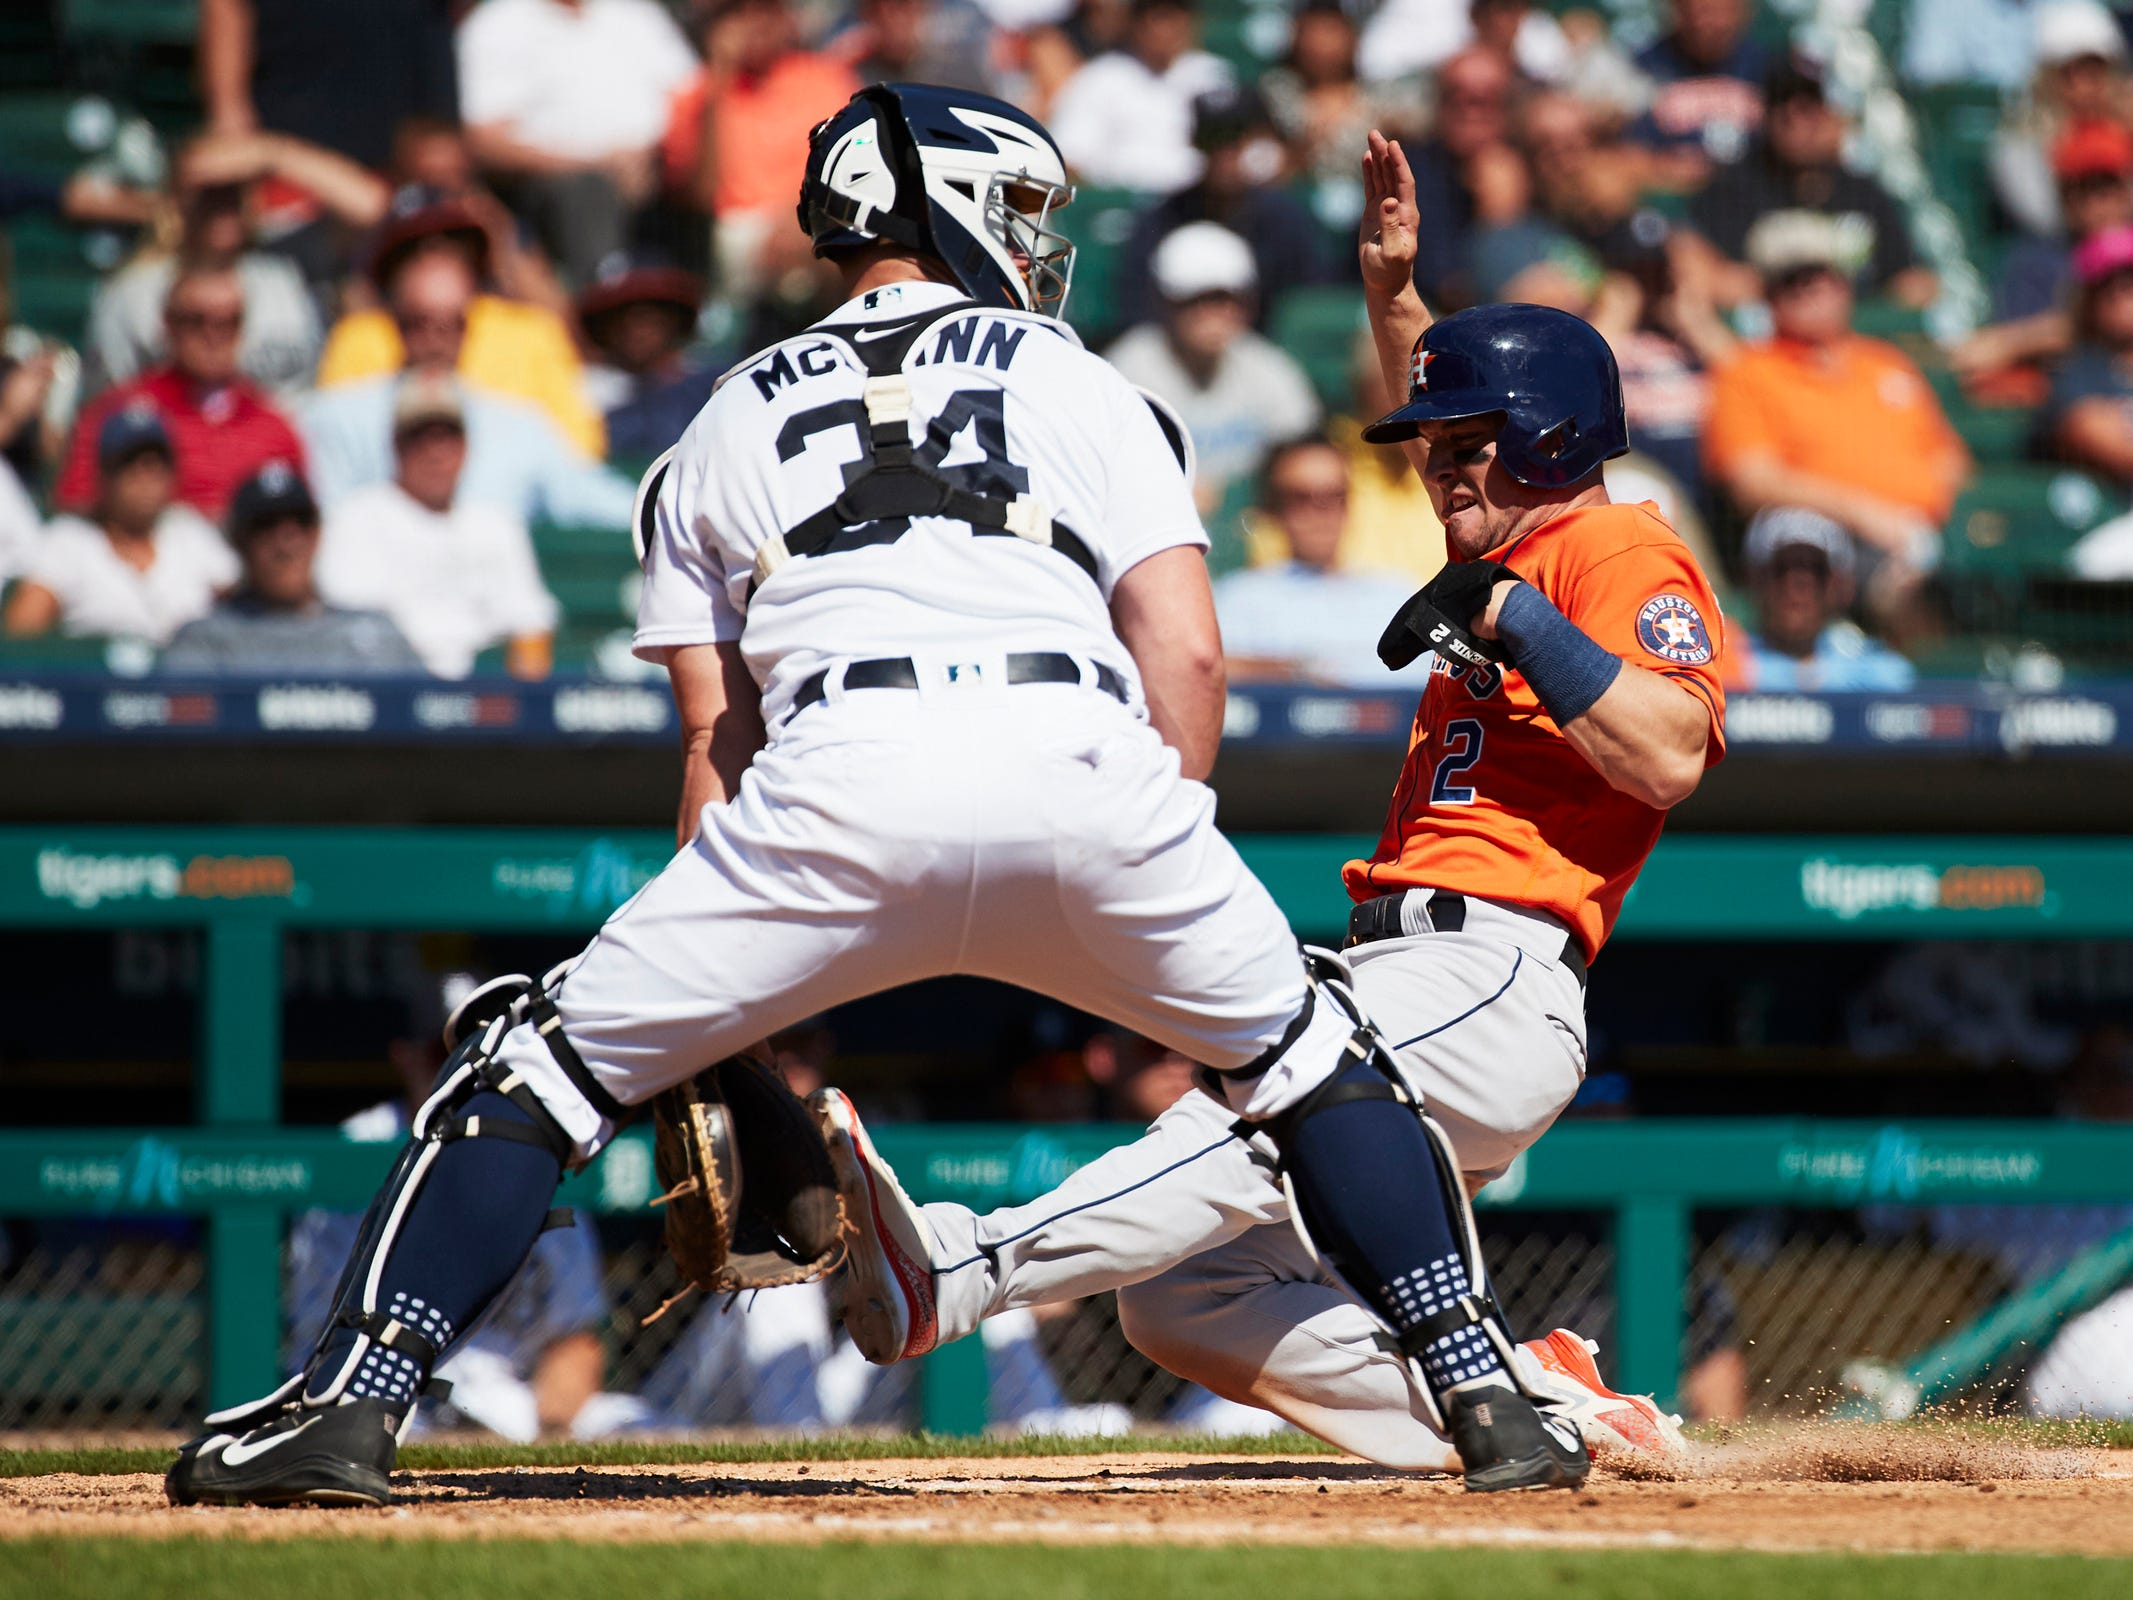 Astros third baseman Alex Bregman (2) slides in safe at home ahead of the throw to Tigers catcher James McCann in the fifth inning on Wednesday, Sept. 12, 2018, at Comerica Park.